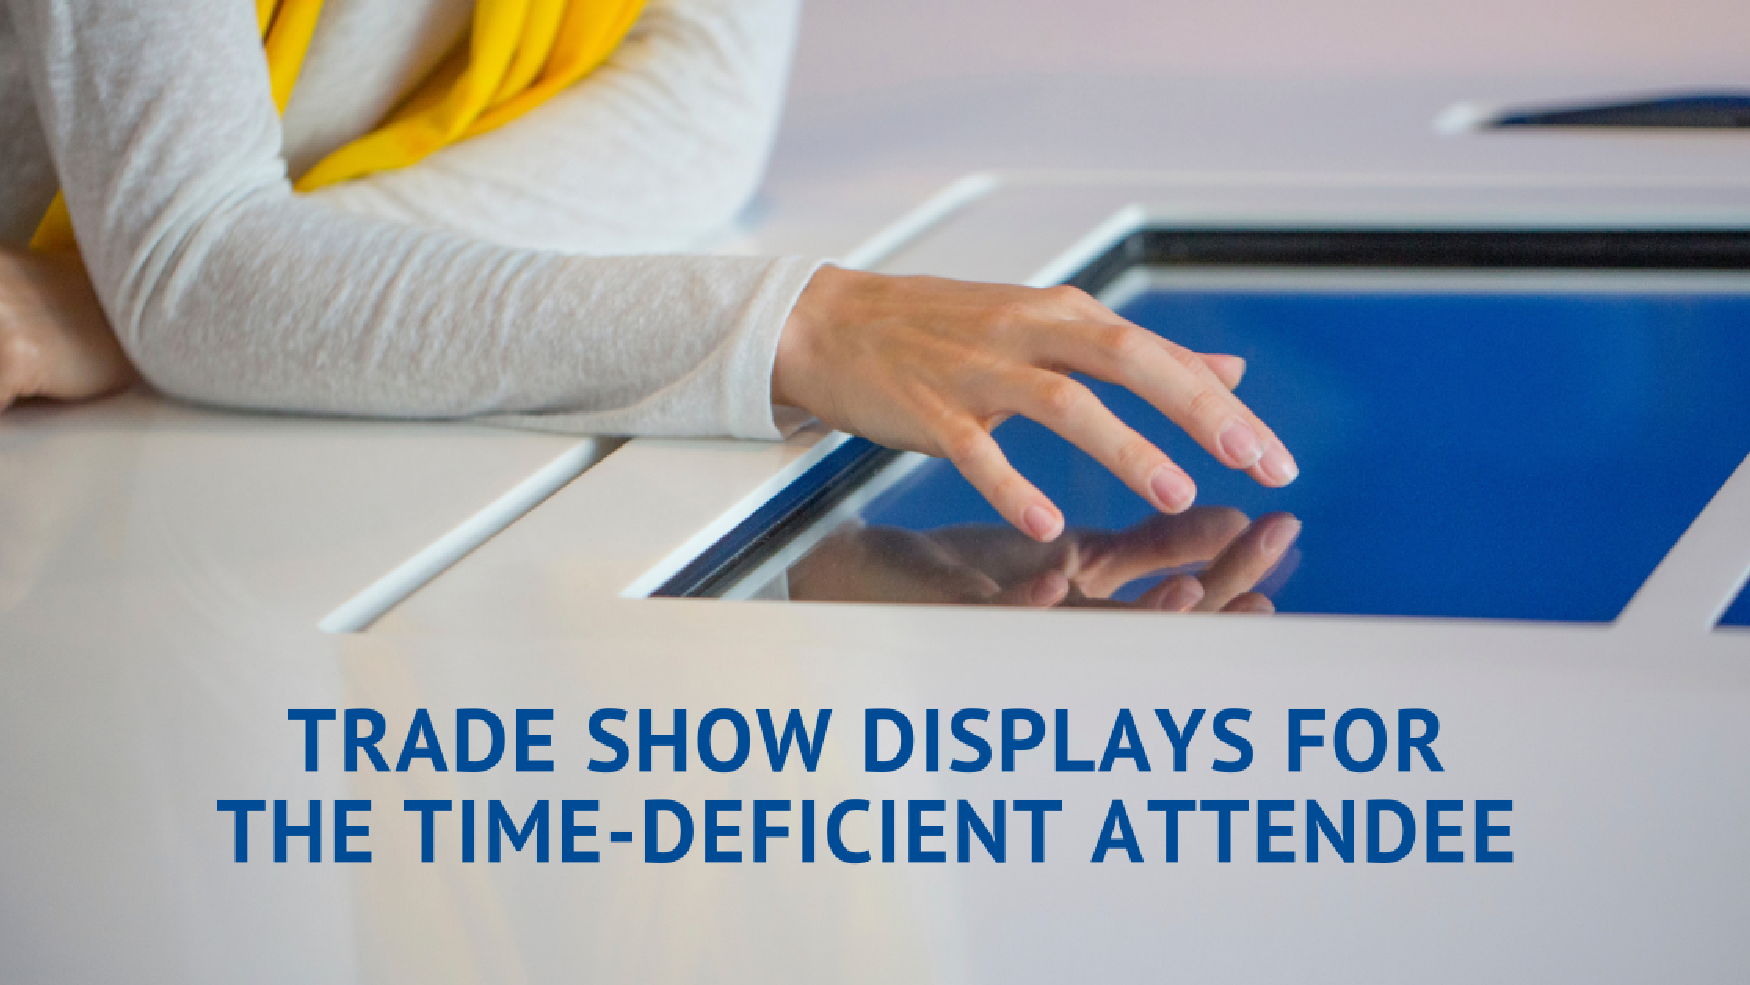 Trade_Show_Displays_for_Time-Deficient_Attendee.png